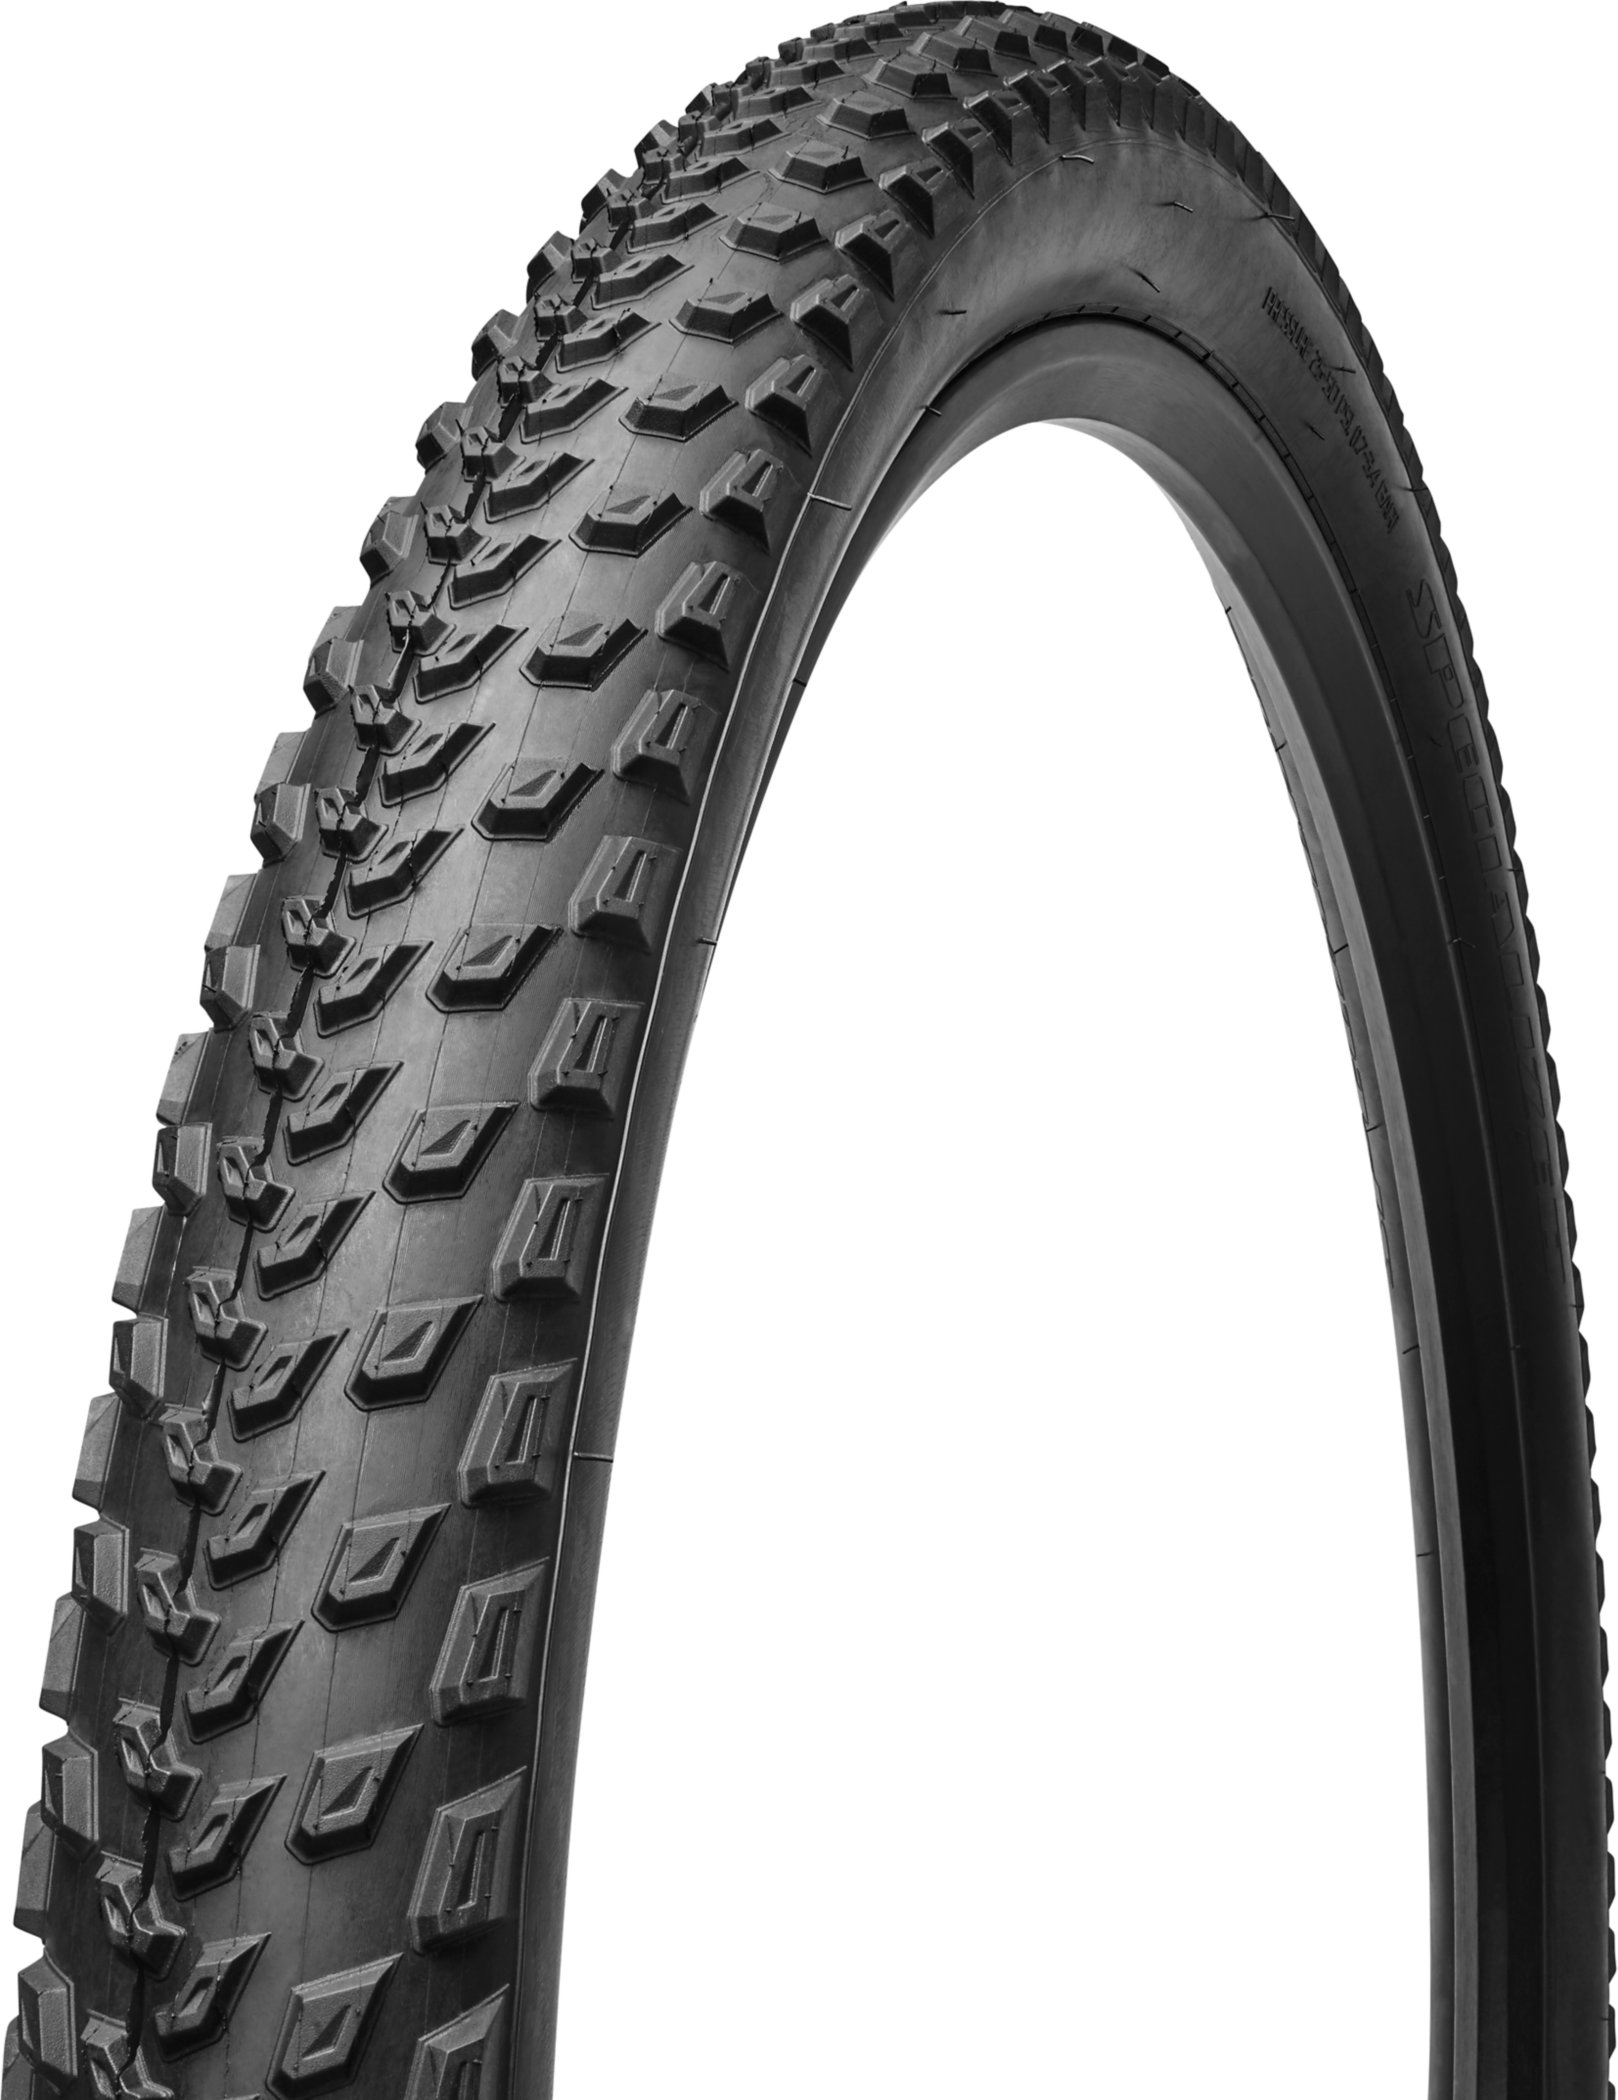 SPECIALIZED FAST TRAK GRID 2BR TIRE 29X2.0 - SPECIALIZED FAST TRAK GRID 2BR TIRE 29X2.0